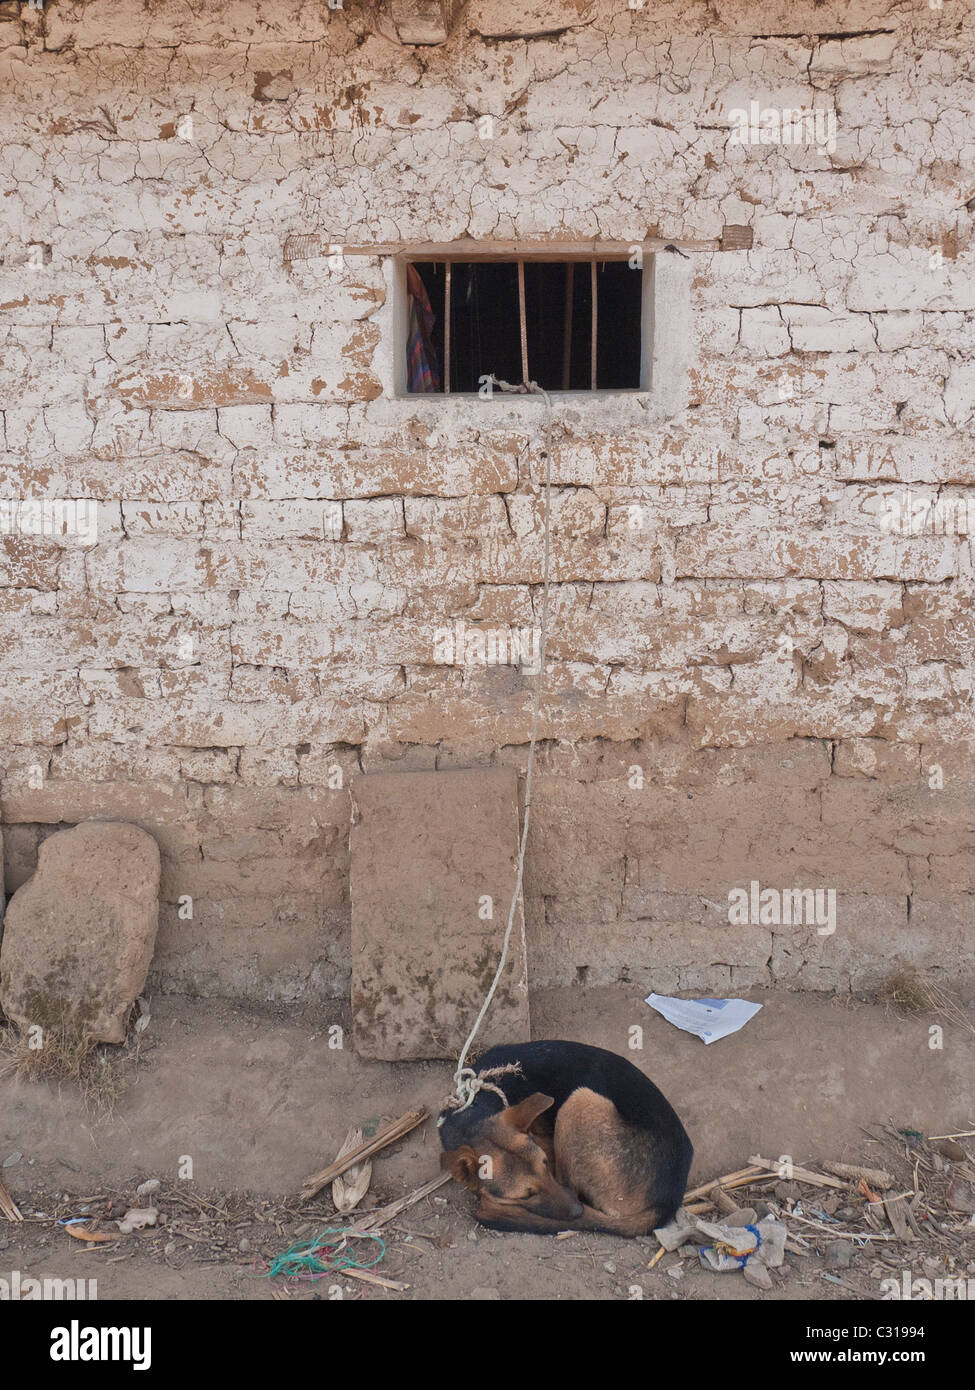 Dog sleeping in beside adobe house in Totonicapan, Guatemala. - Stock Image